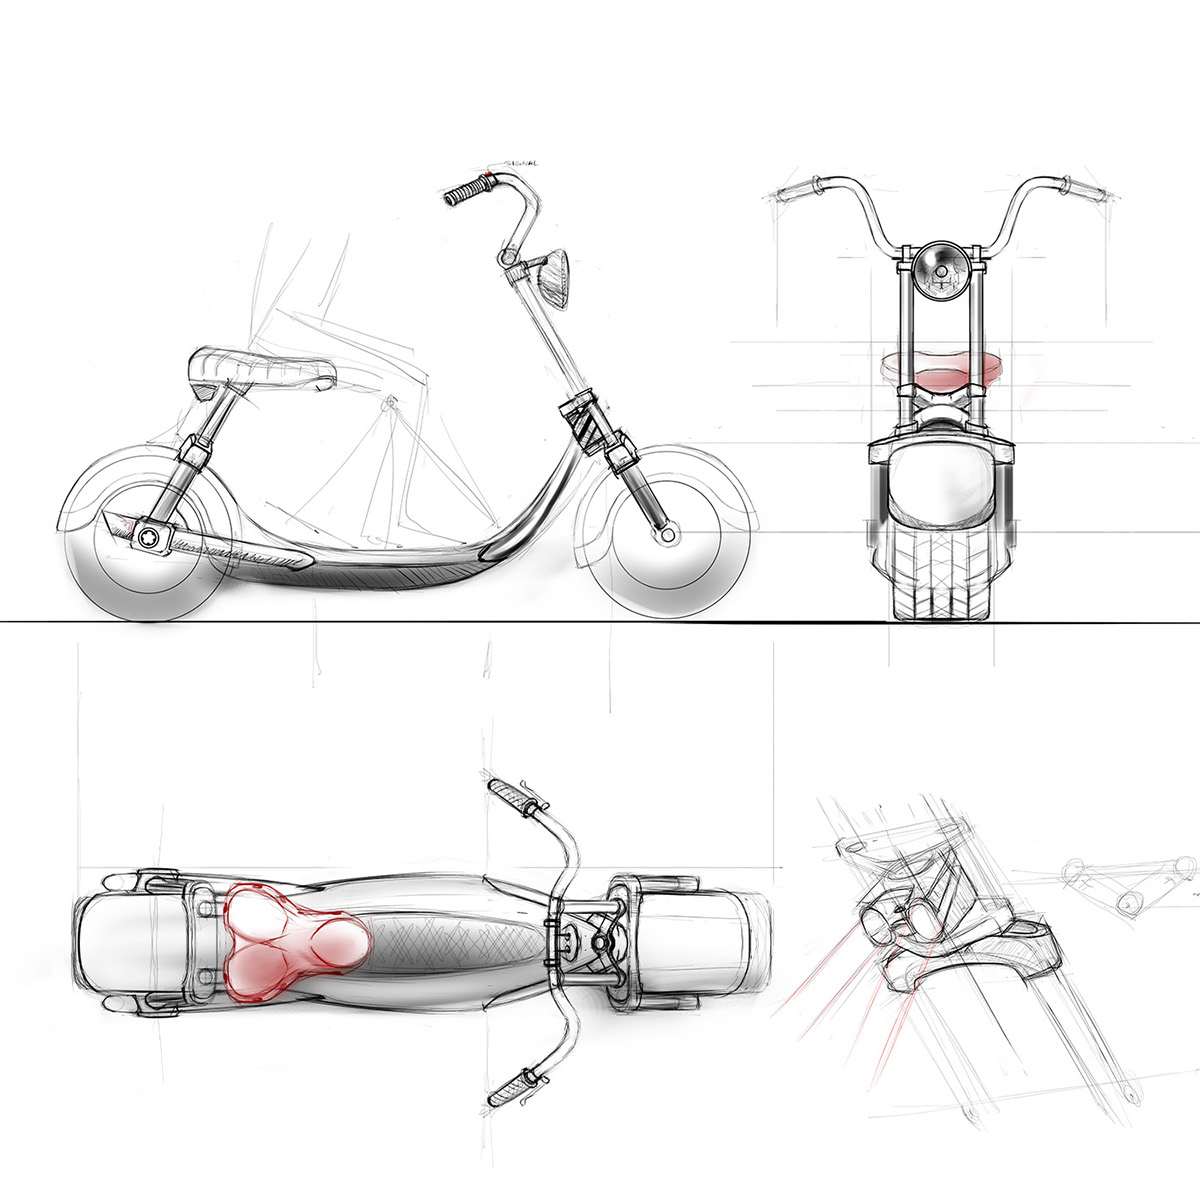 Scooterson On Behance